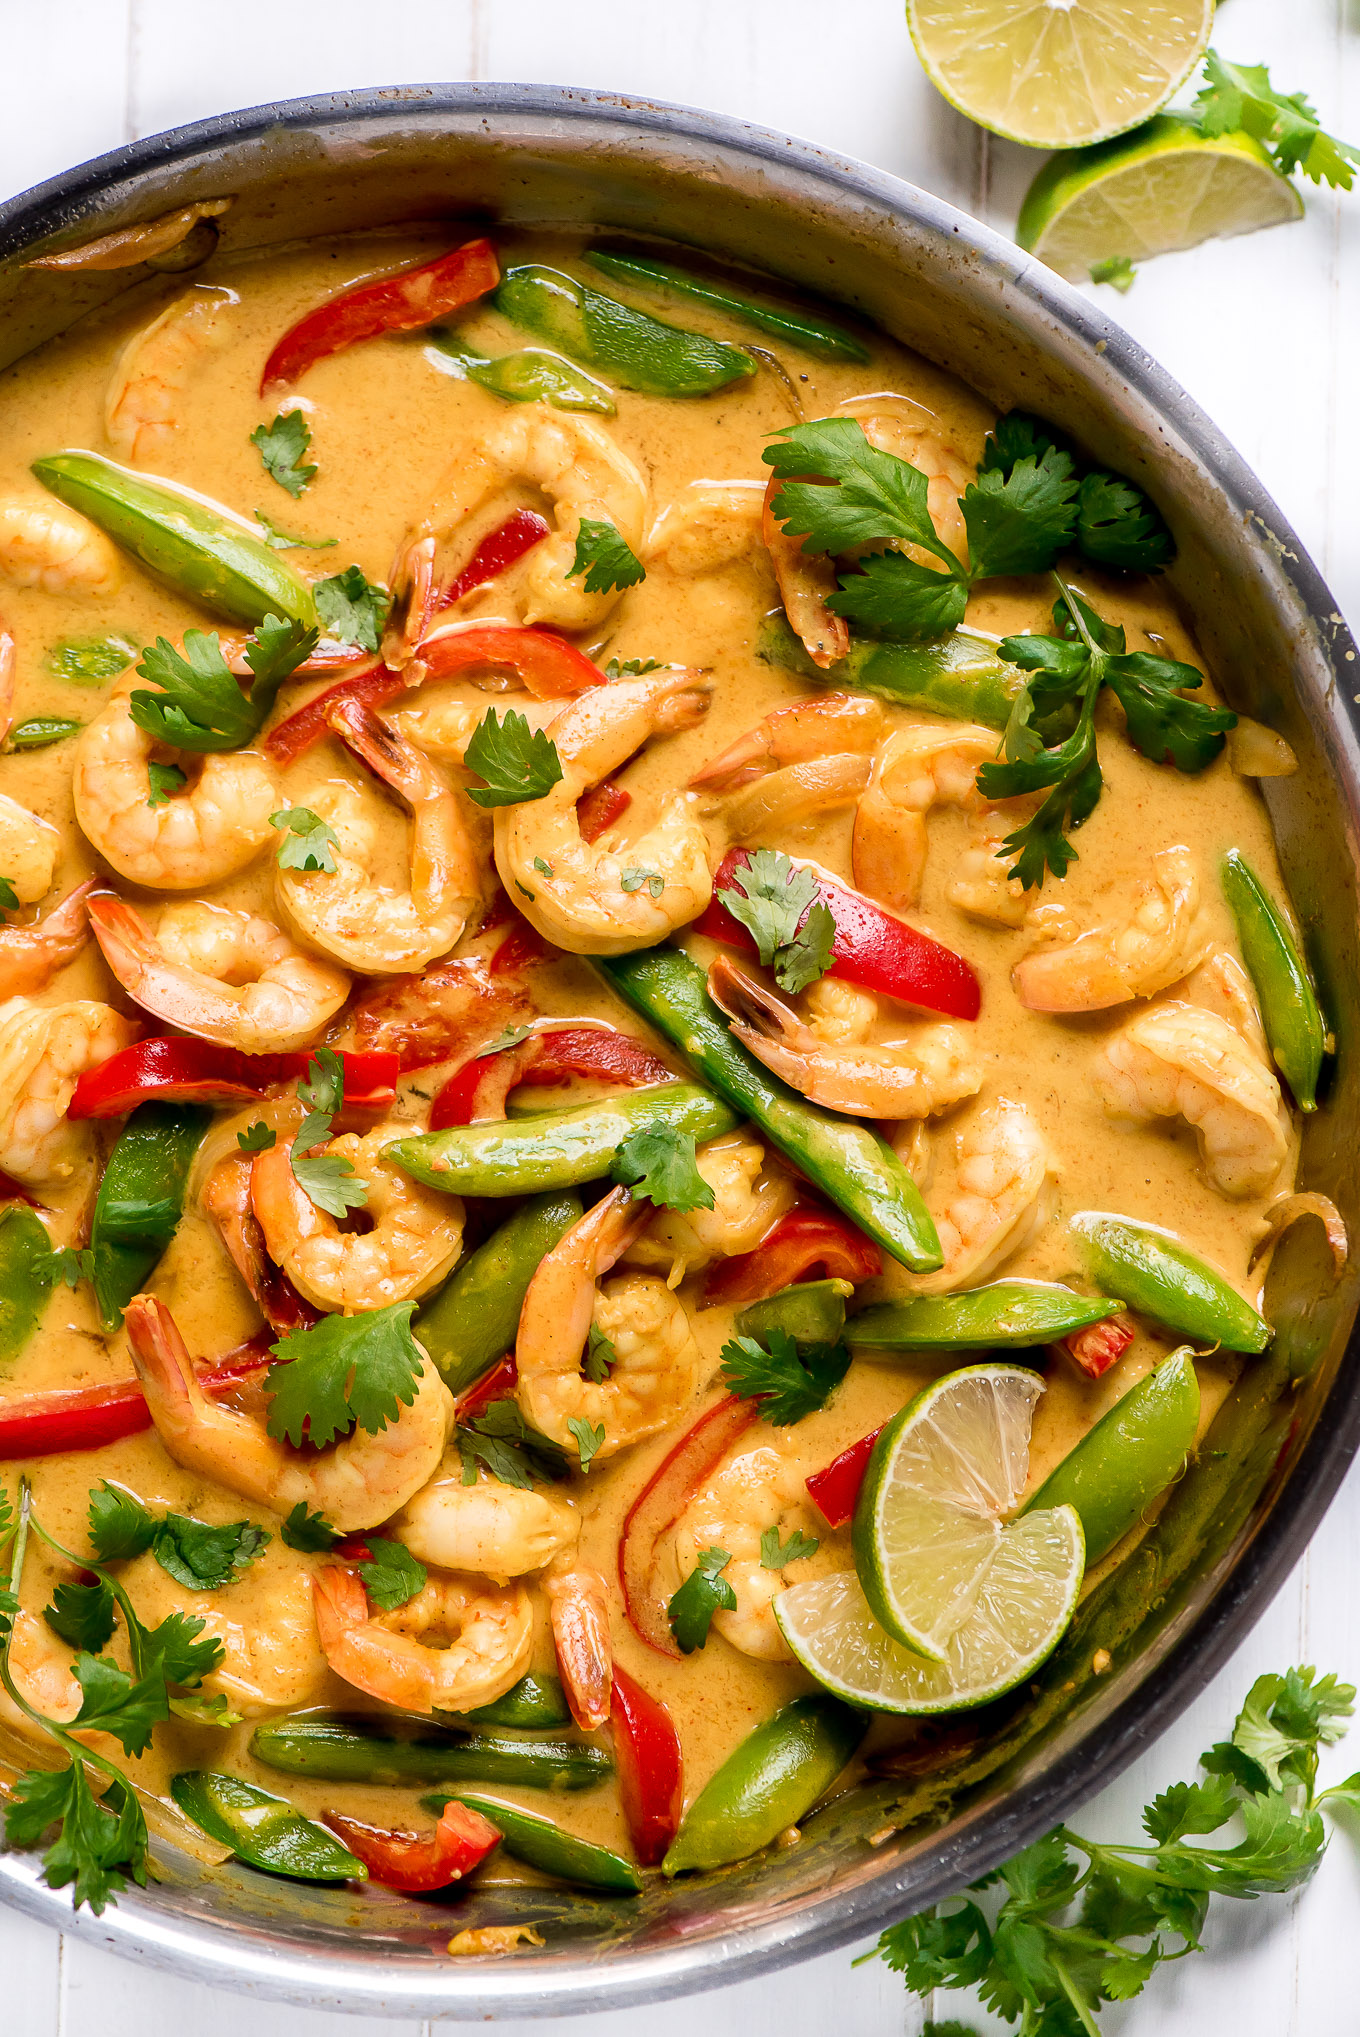 Pan of Thai Shrimp Curry loaded with red bell peppers, snap peas, shrimp, cilantro, and lime.